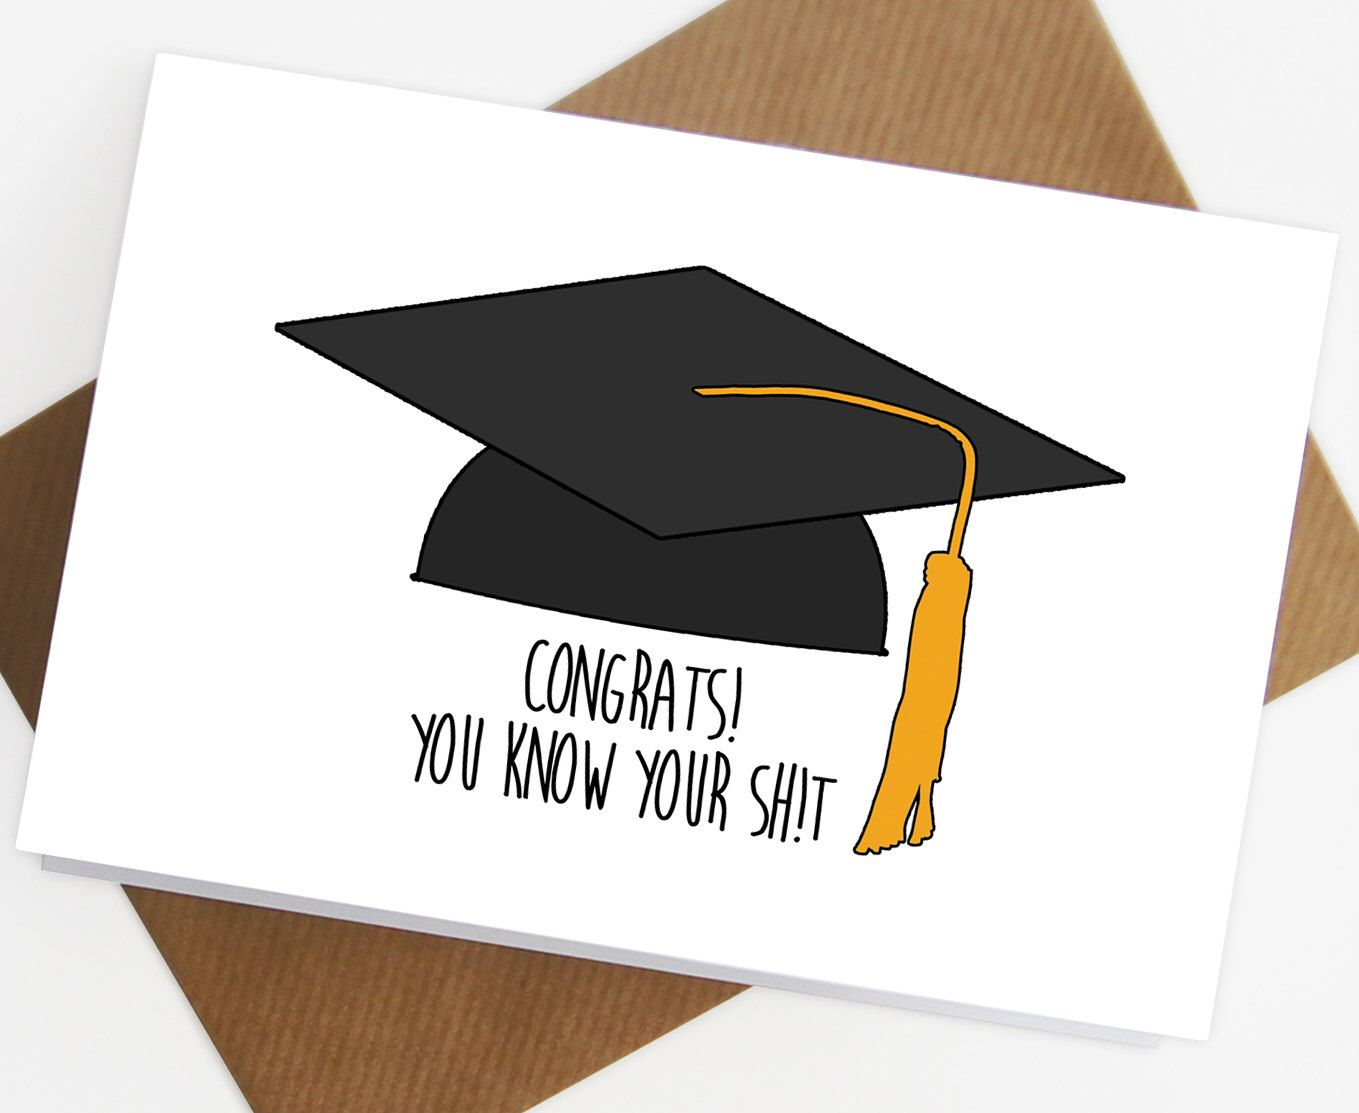 graduation card congratulations on your graduation funny graduation card grad college university congrats you passed clever by siouxalice on etsy